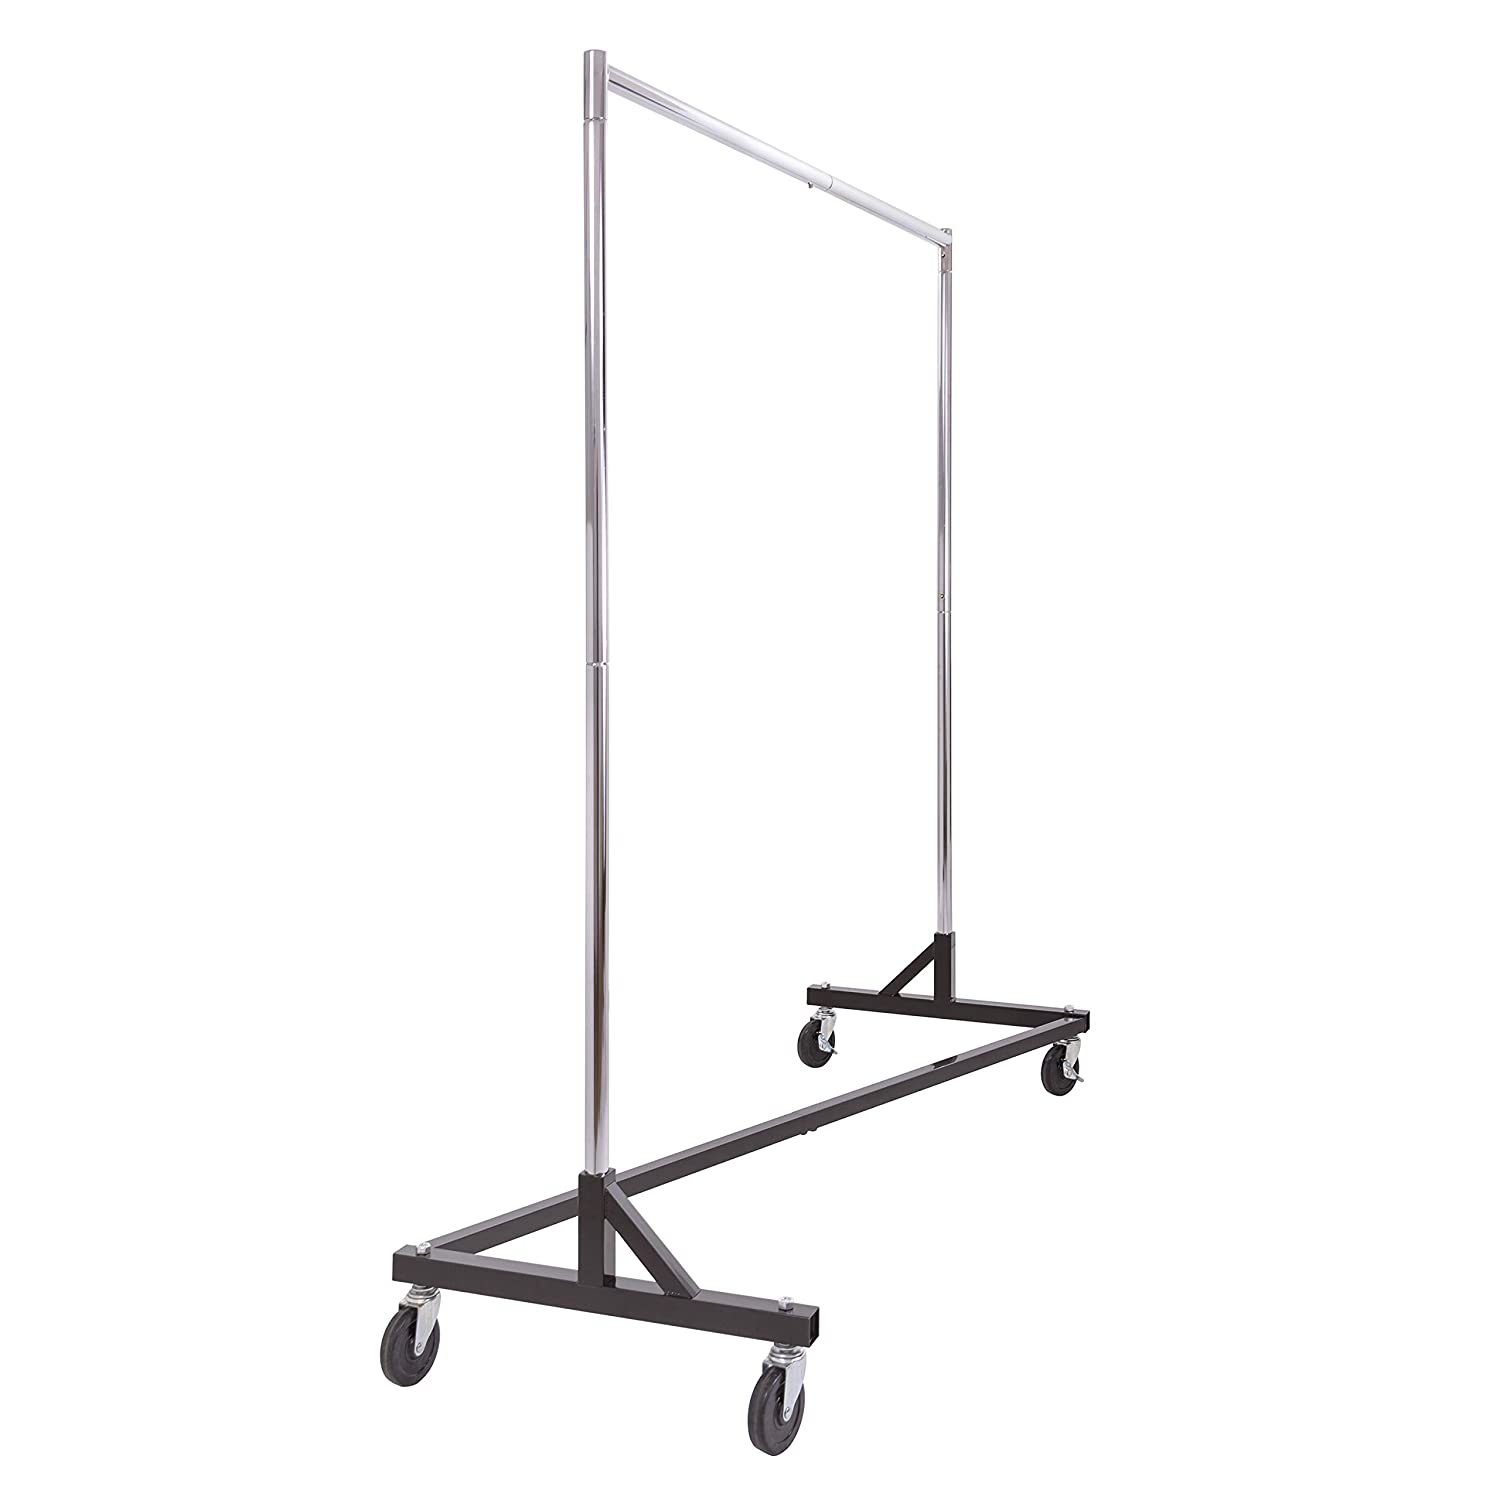 Inch-Inch Rack with KD Construction Econoco RZK//8 Square Tubing Black Base